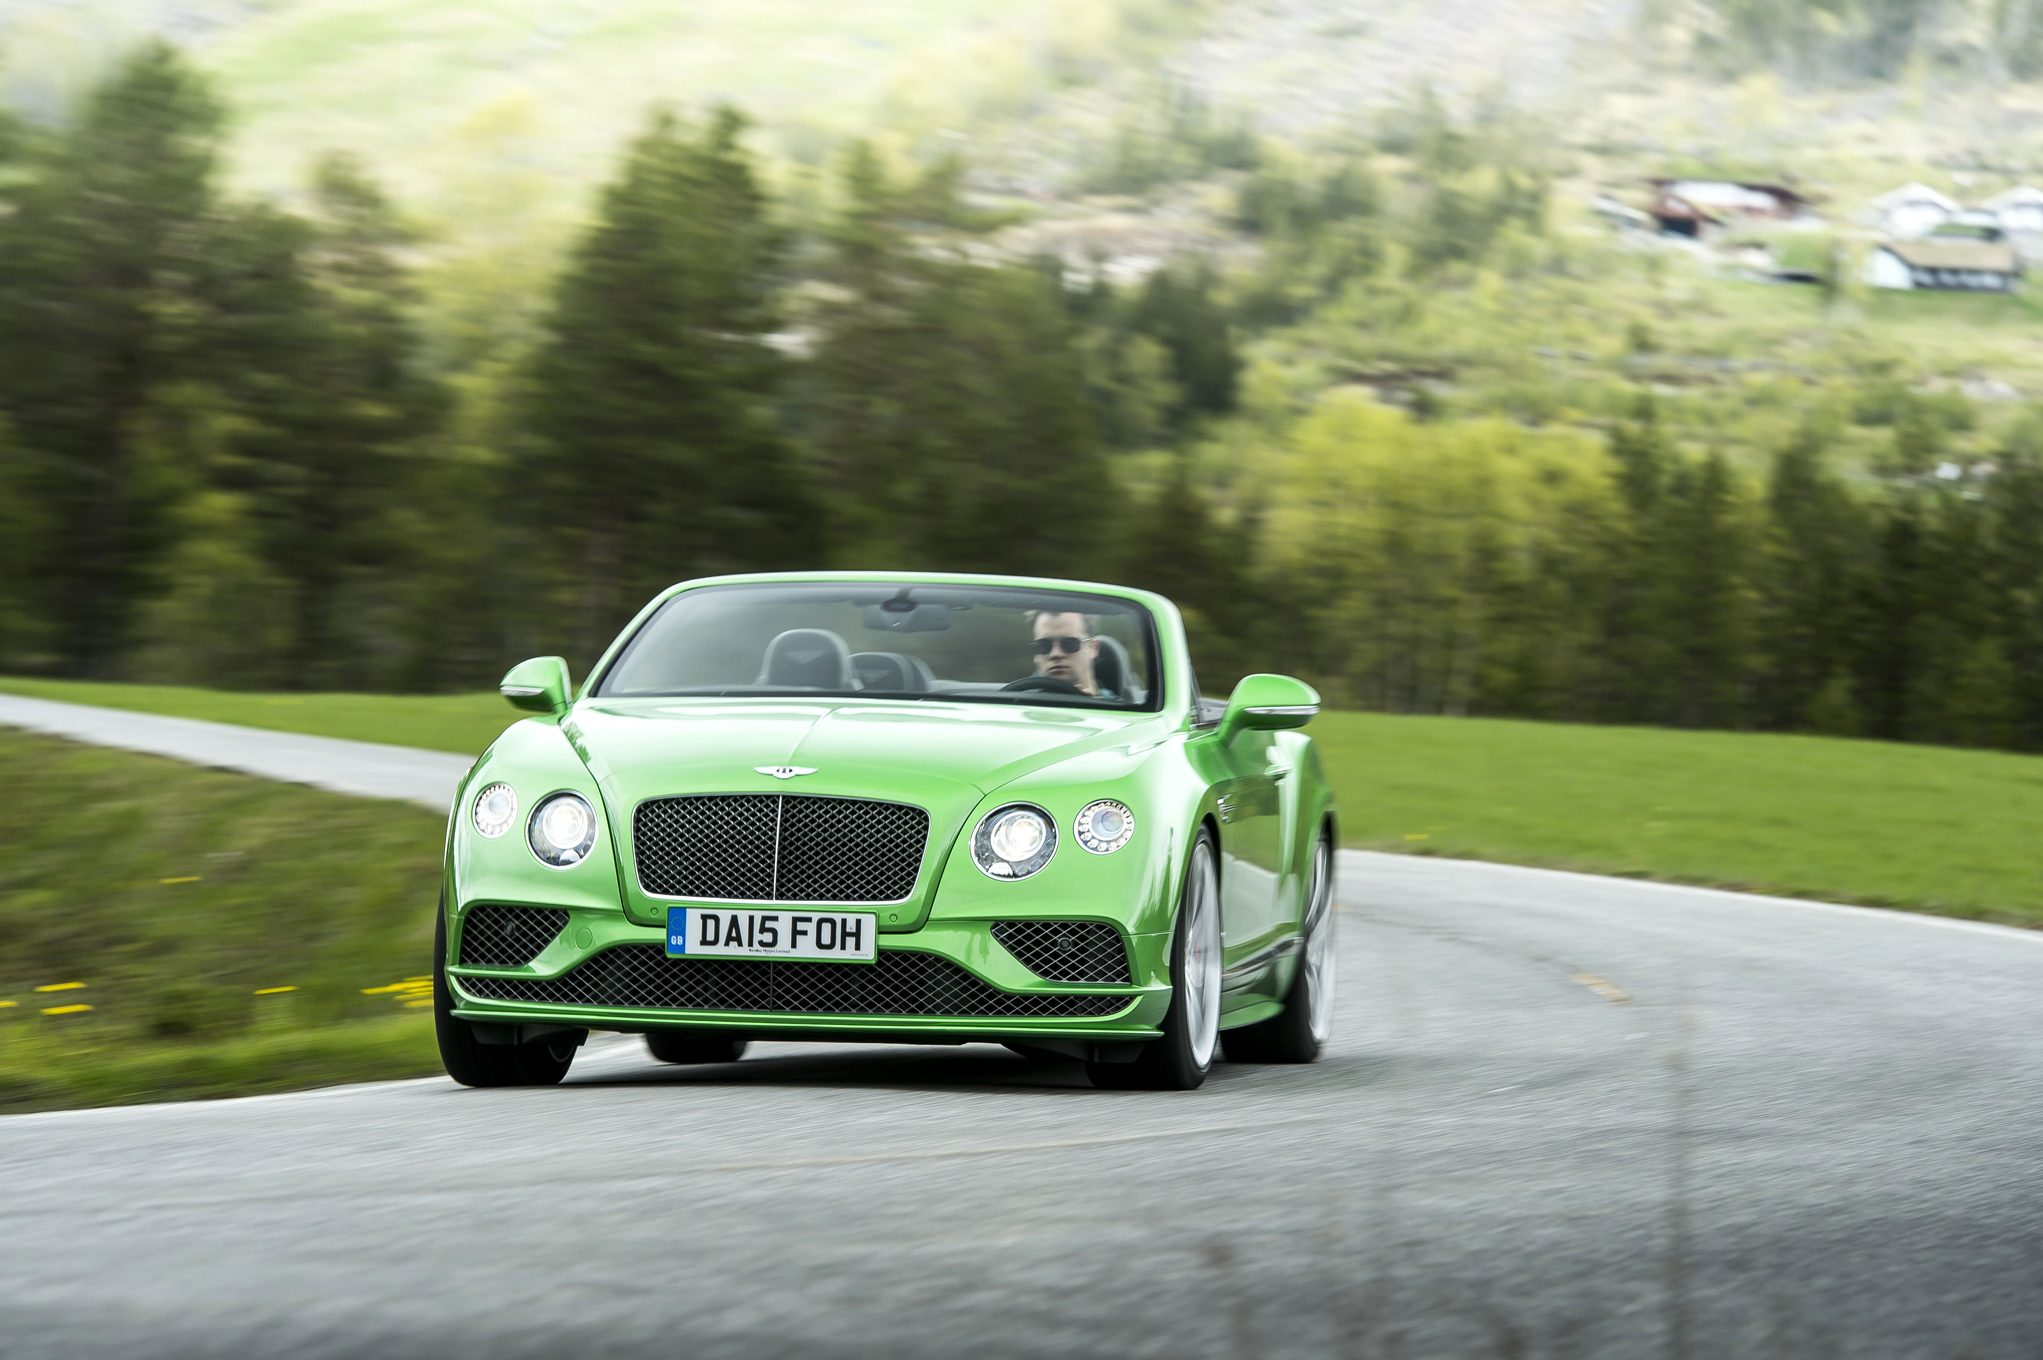 2019 Bentley Continental GT Prototype photo - 4